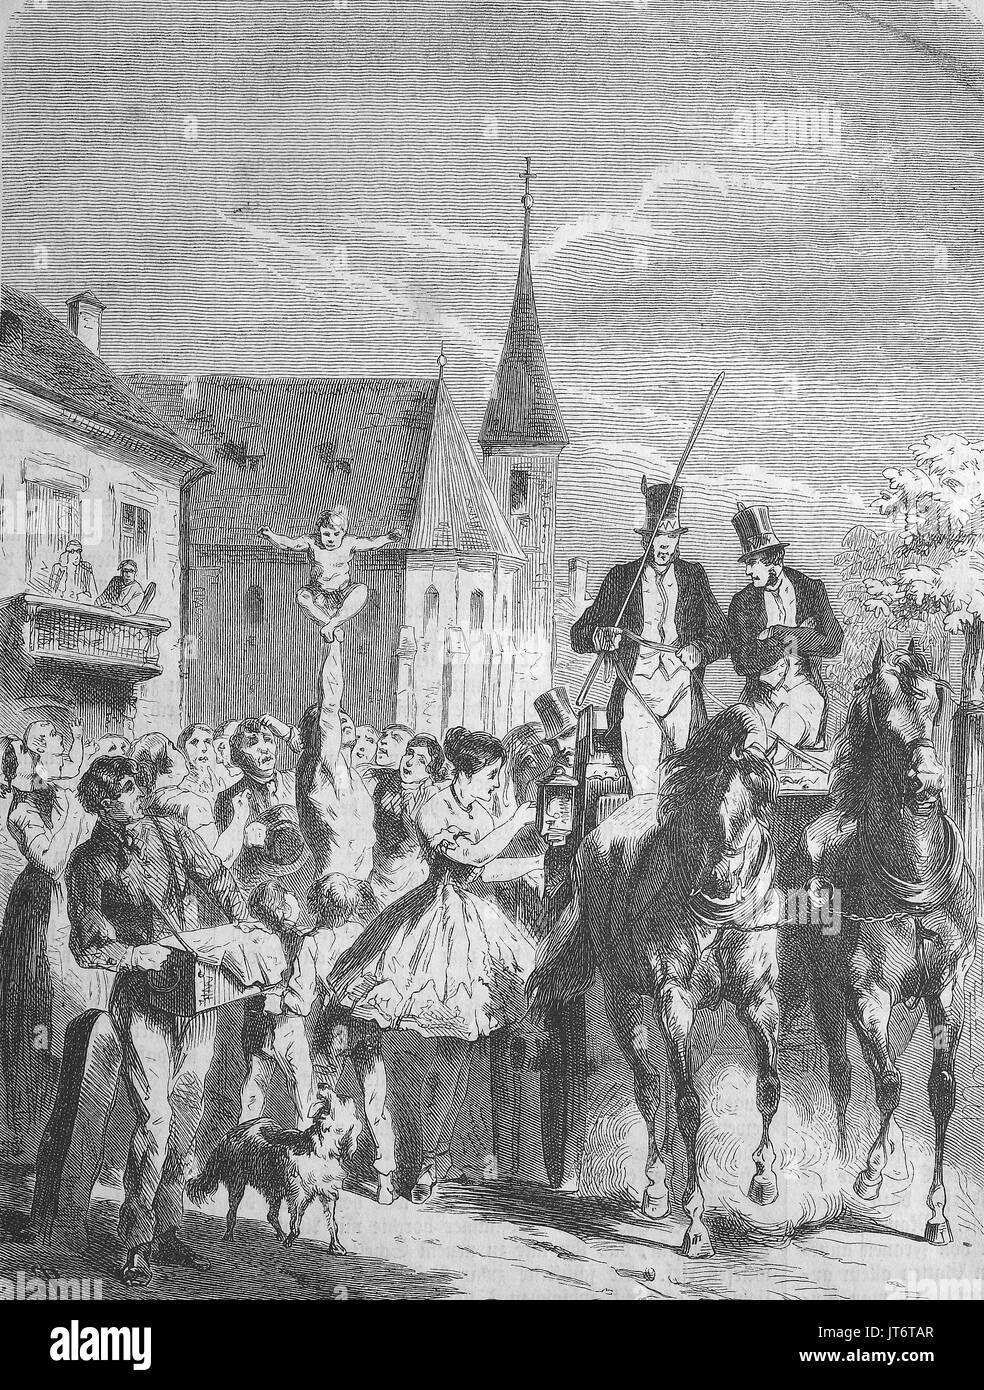 Street scene, a circus arrives in the city, Digital improved reproduction of an image published between 1880 - 1885 - Stock Image